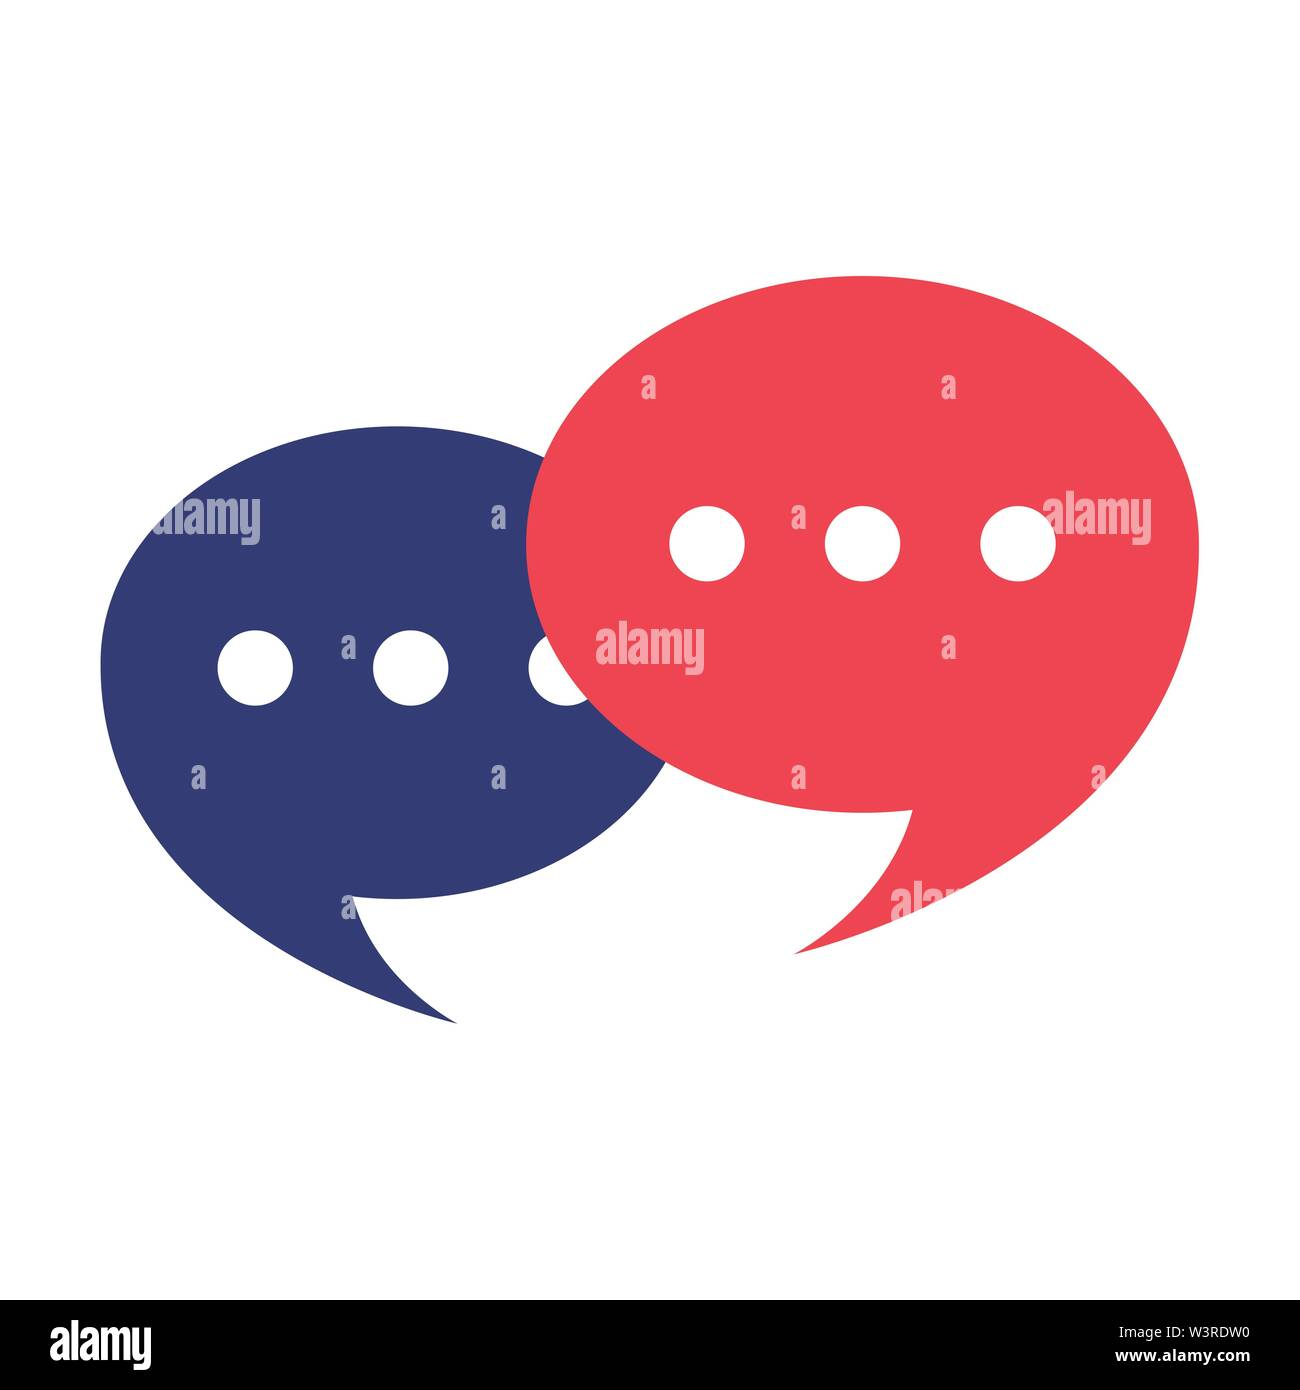 chat comic red and blue speech bubbles cartoon vector illustration graphic design - Stock Image